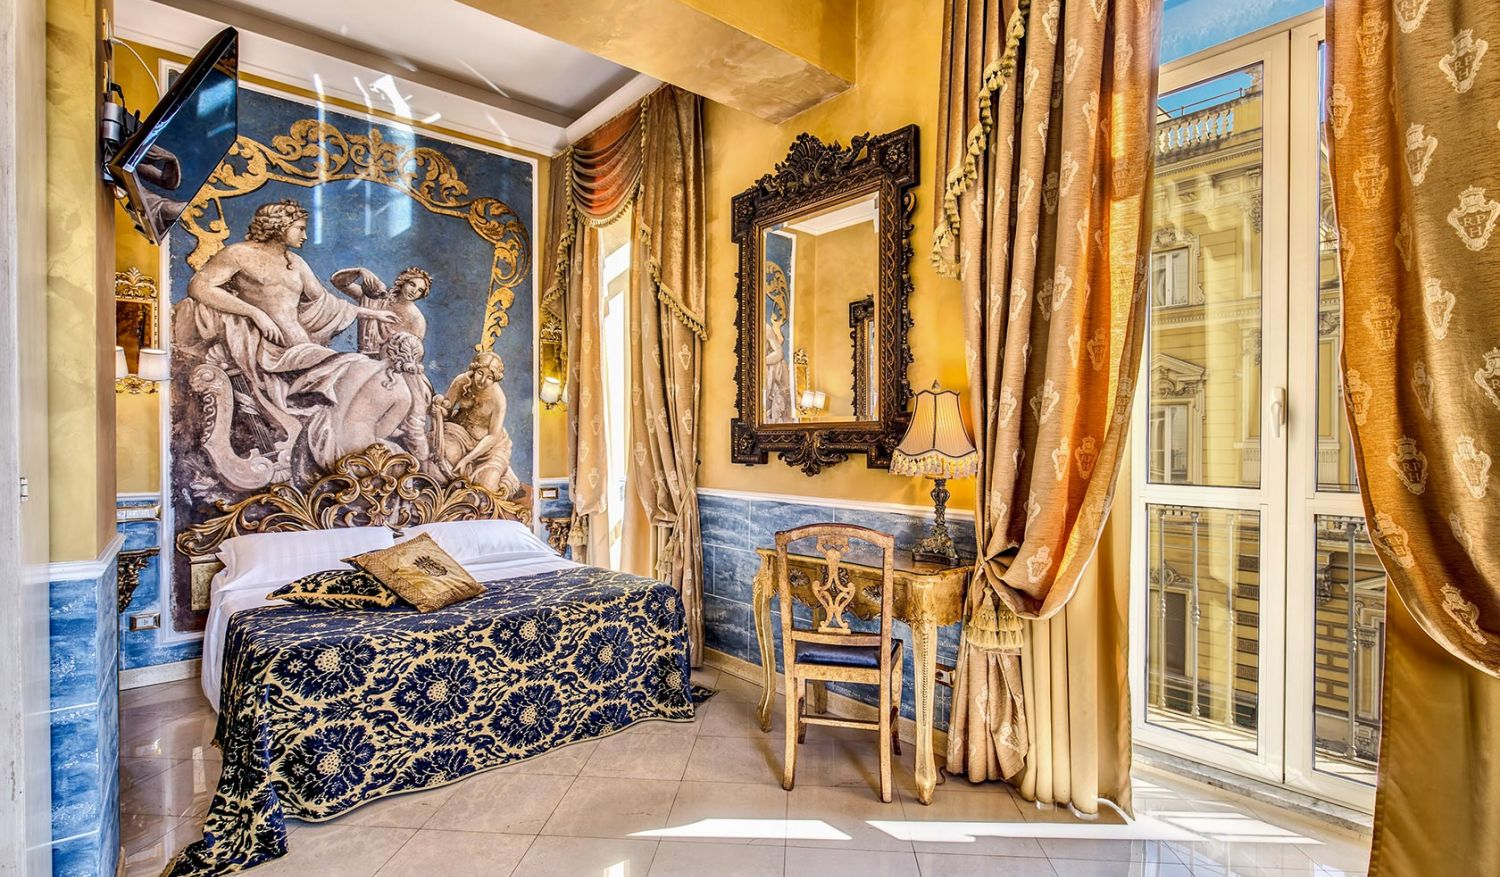 Elegant suites in the center of Rome